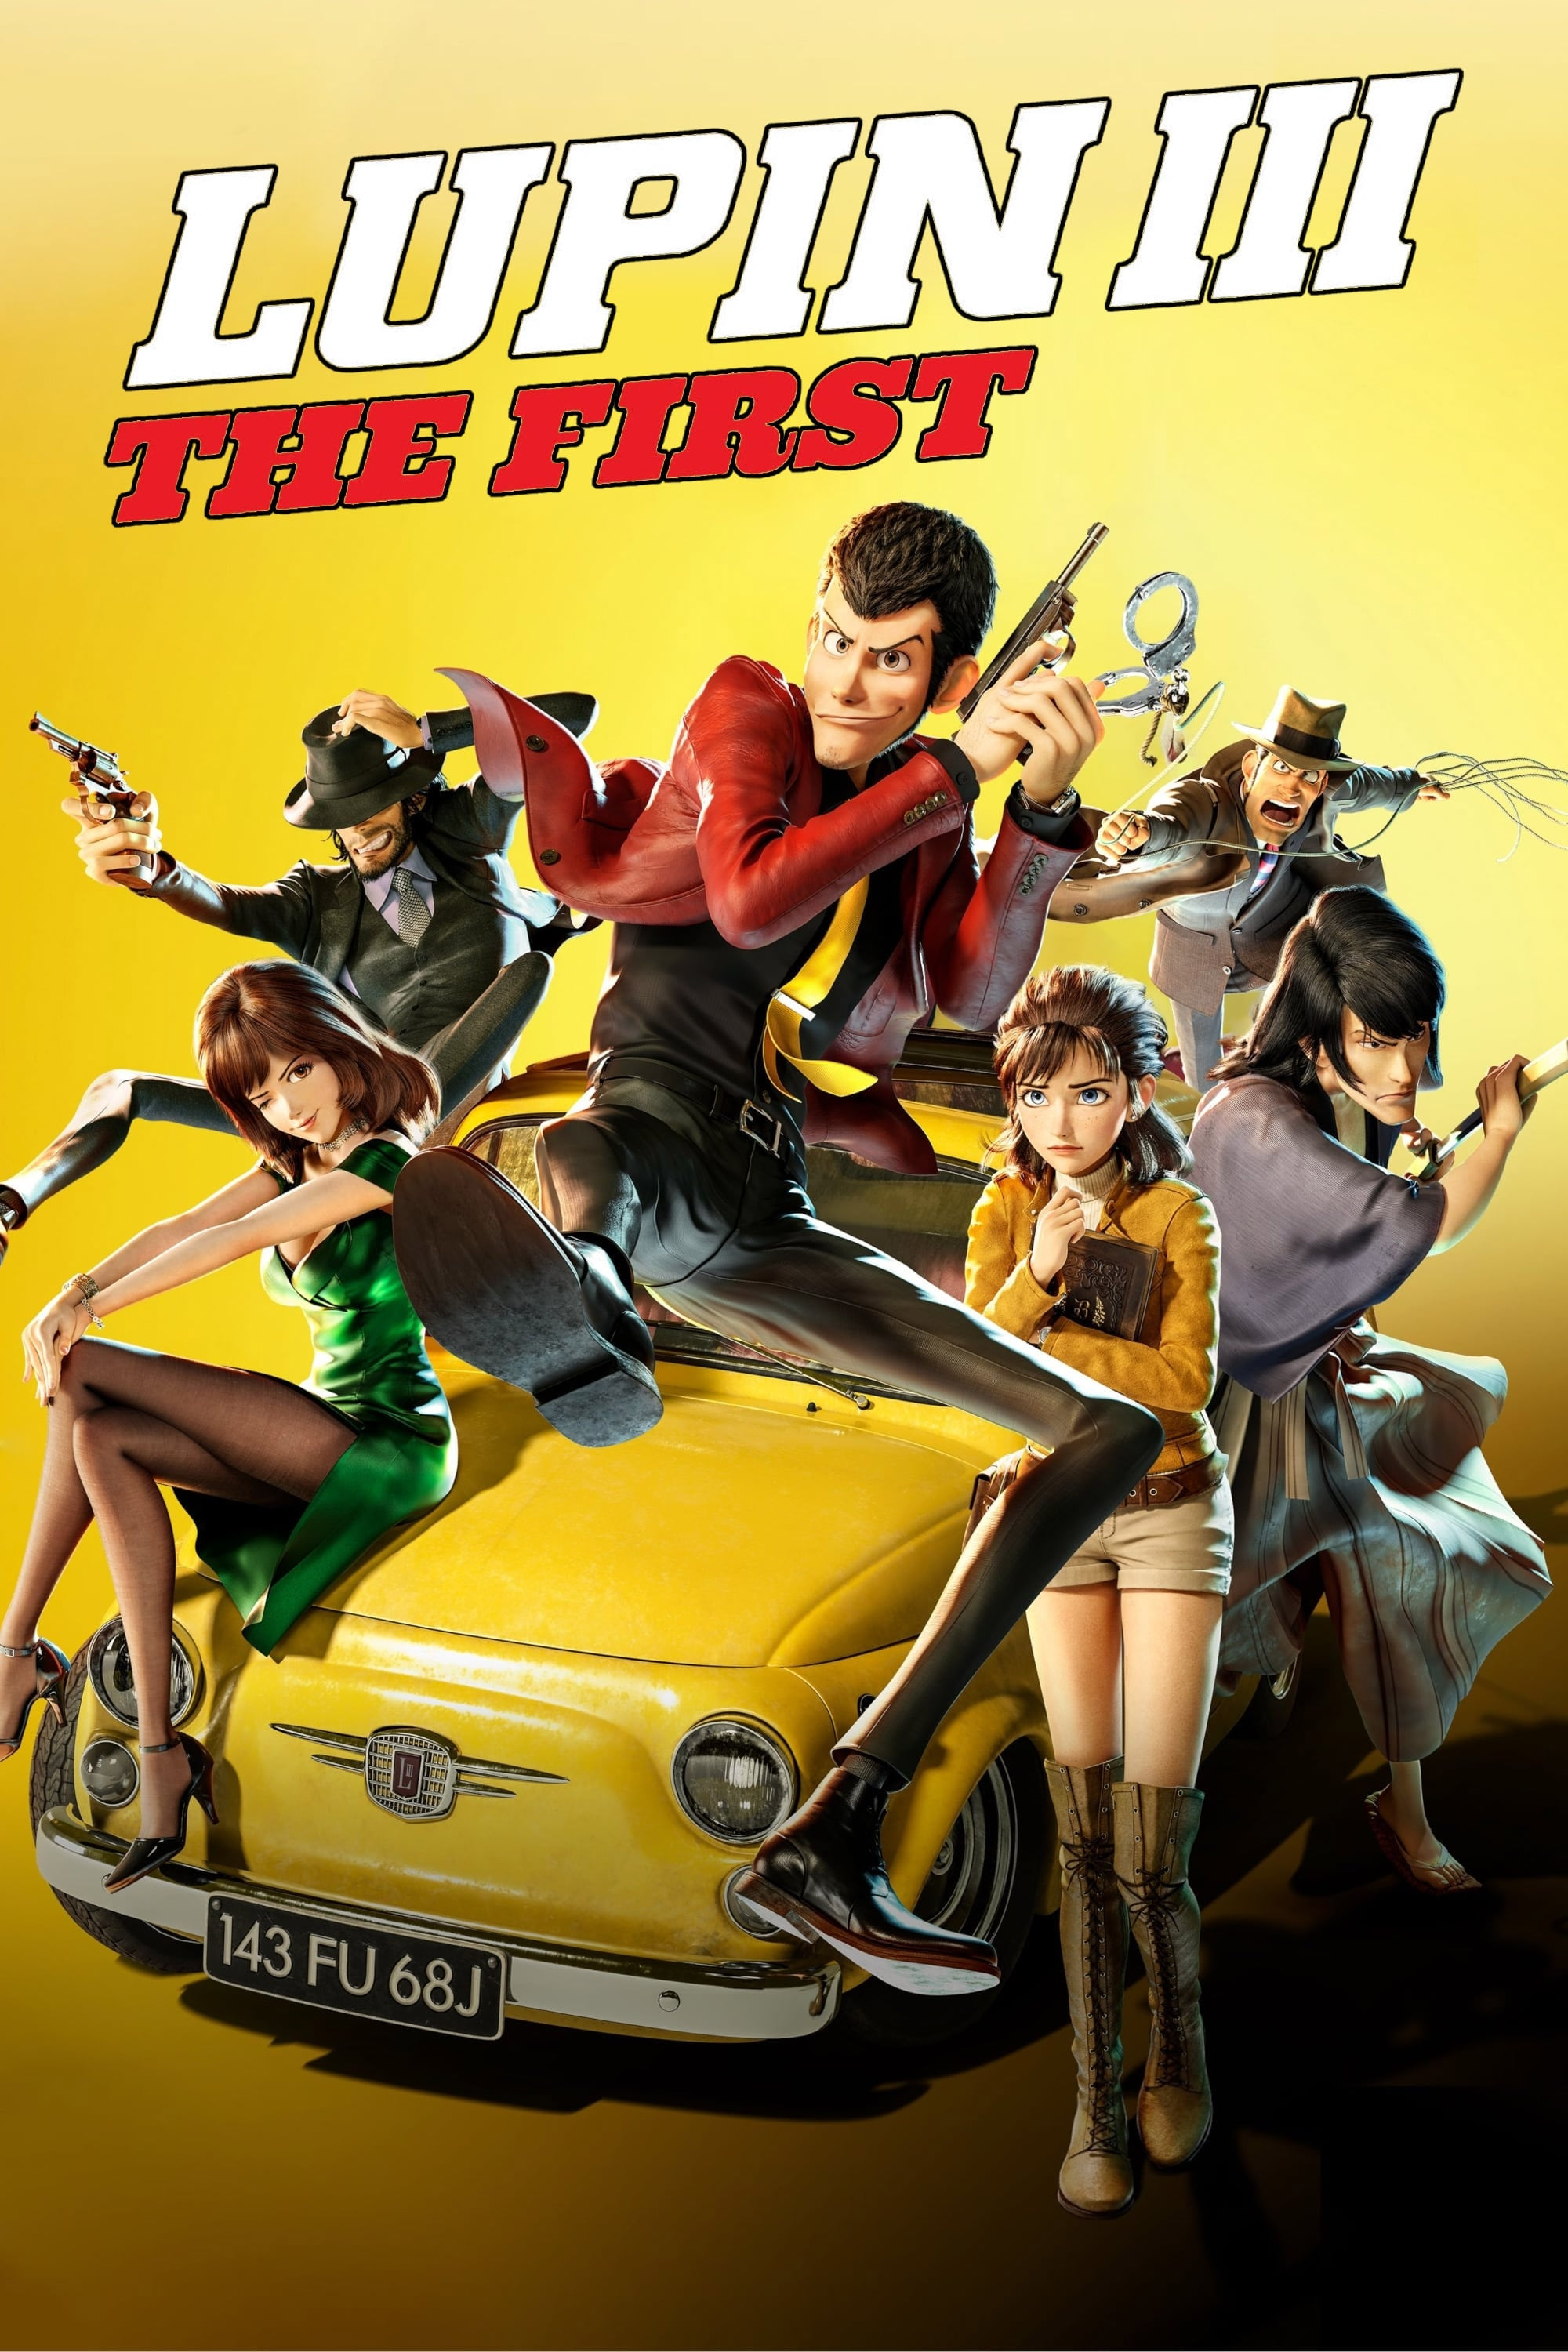 Lupin 3 : The First - Lupin III: The First - 2020